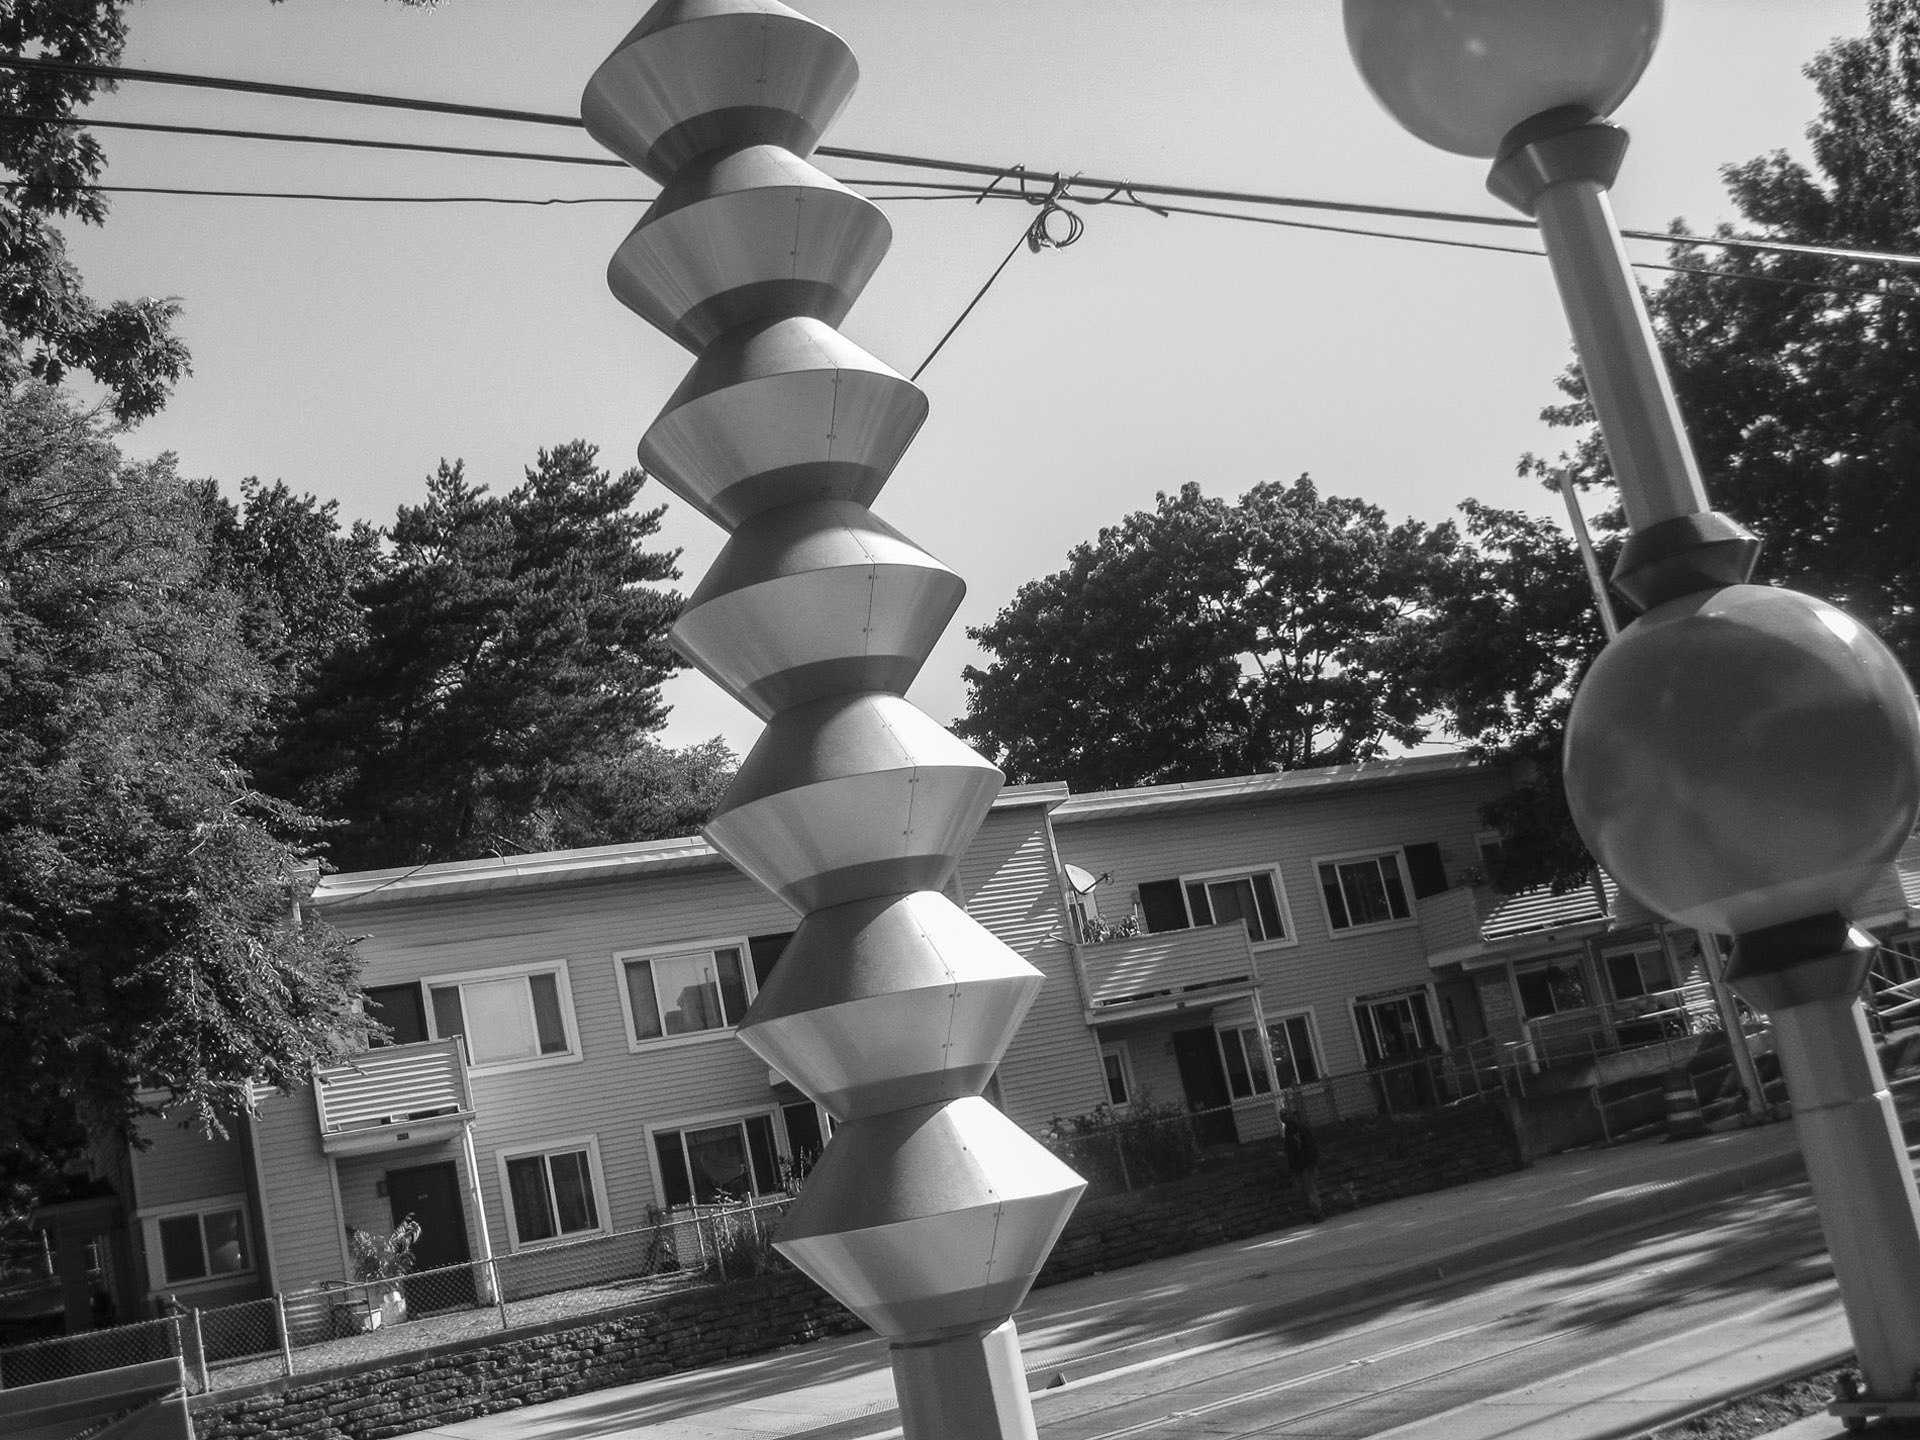 The public art adds to the old community which will soon become new.